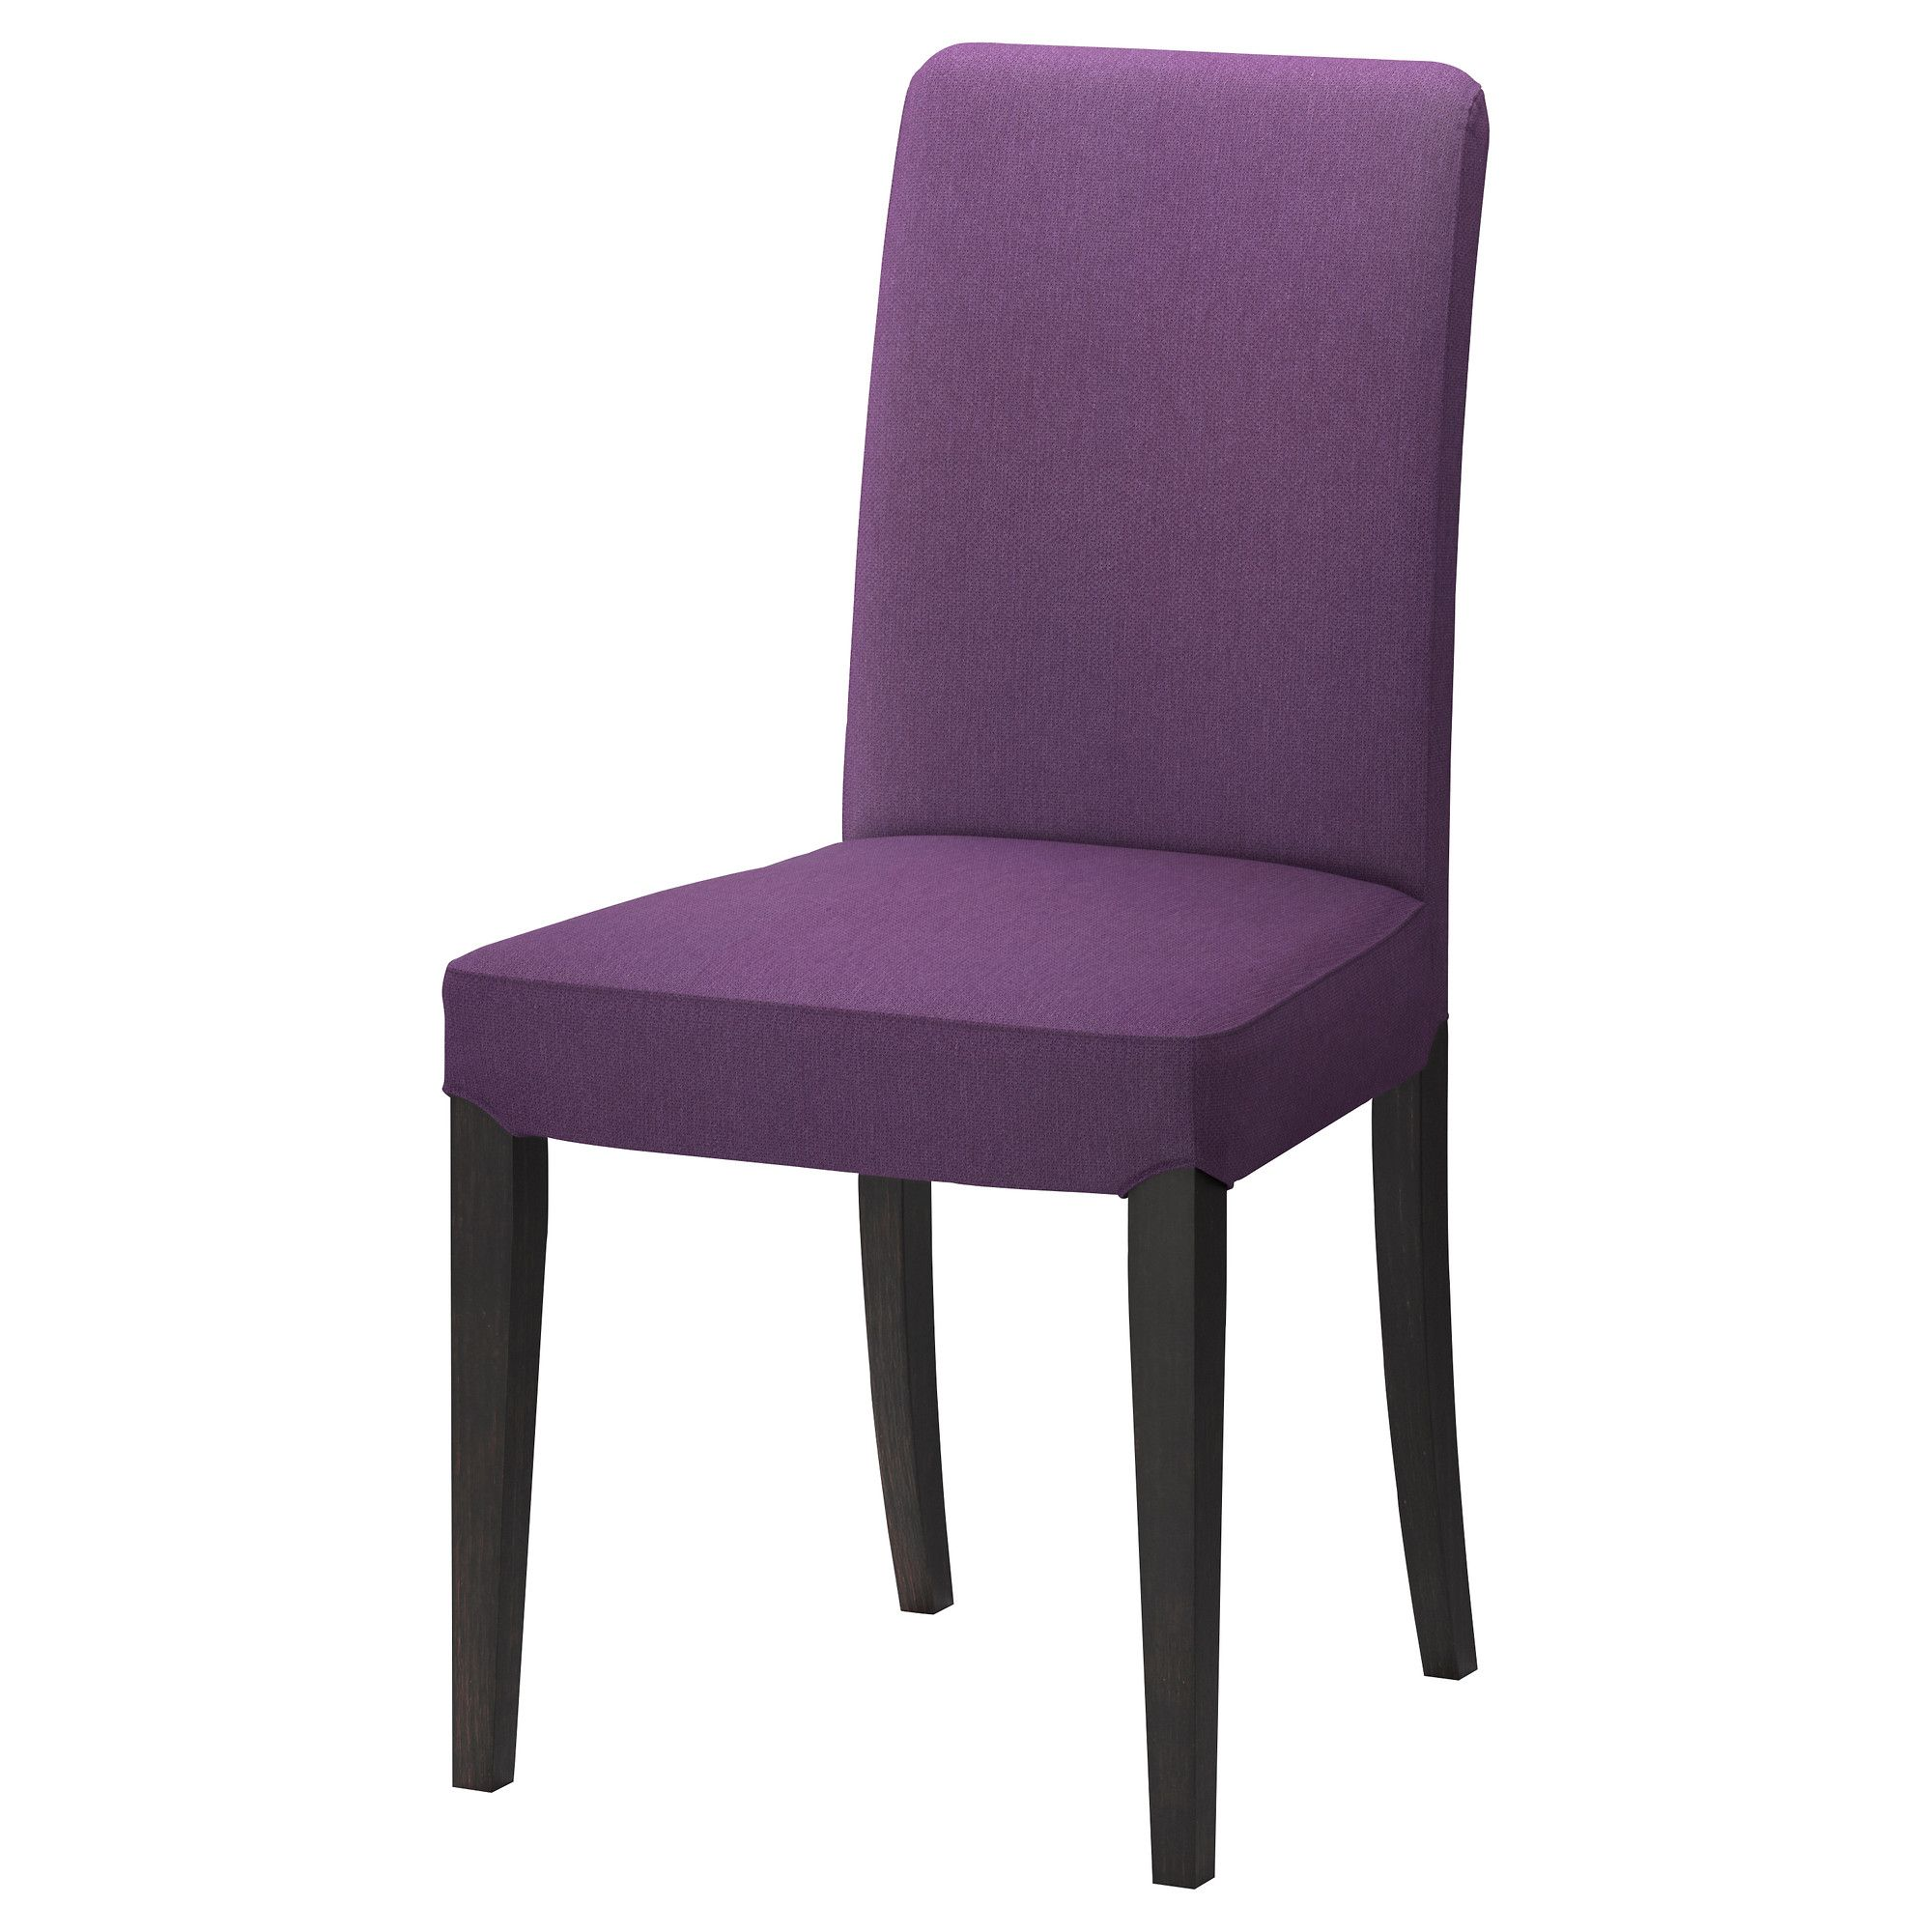 Scenic Purple Fabric Upholstered Dining Chairs Without Arms Added Black Wooden Base Legs As Decorate In Modern Room Ideas